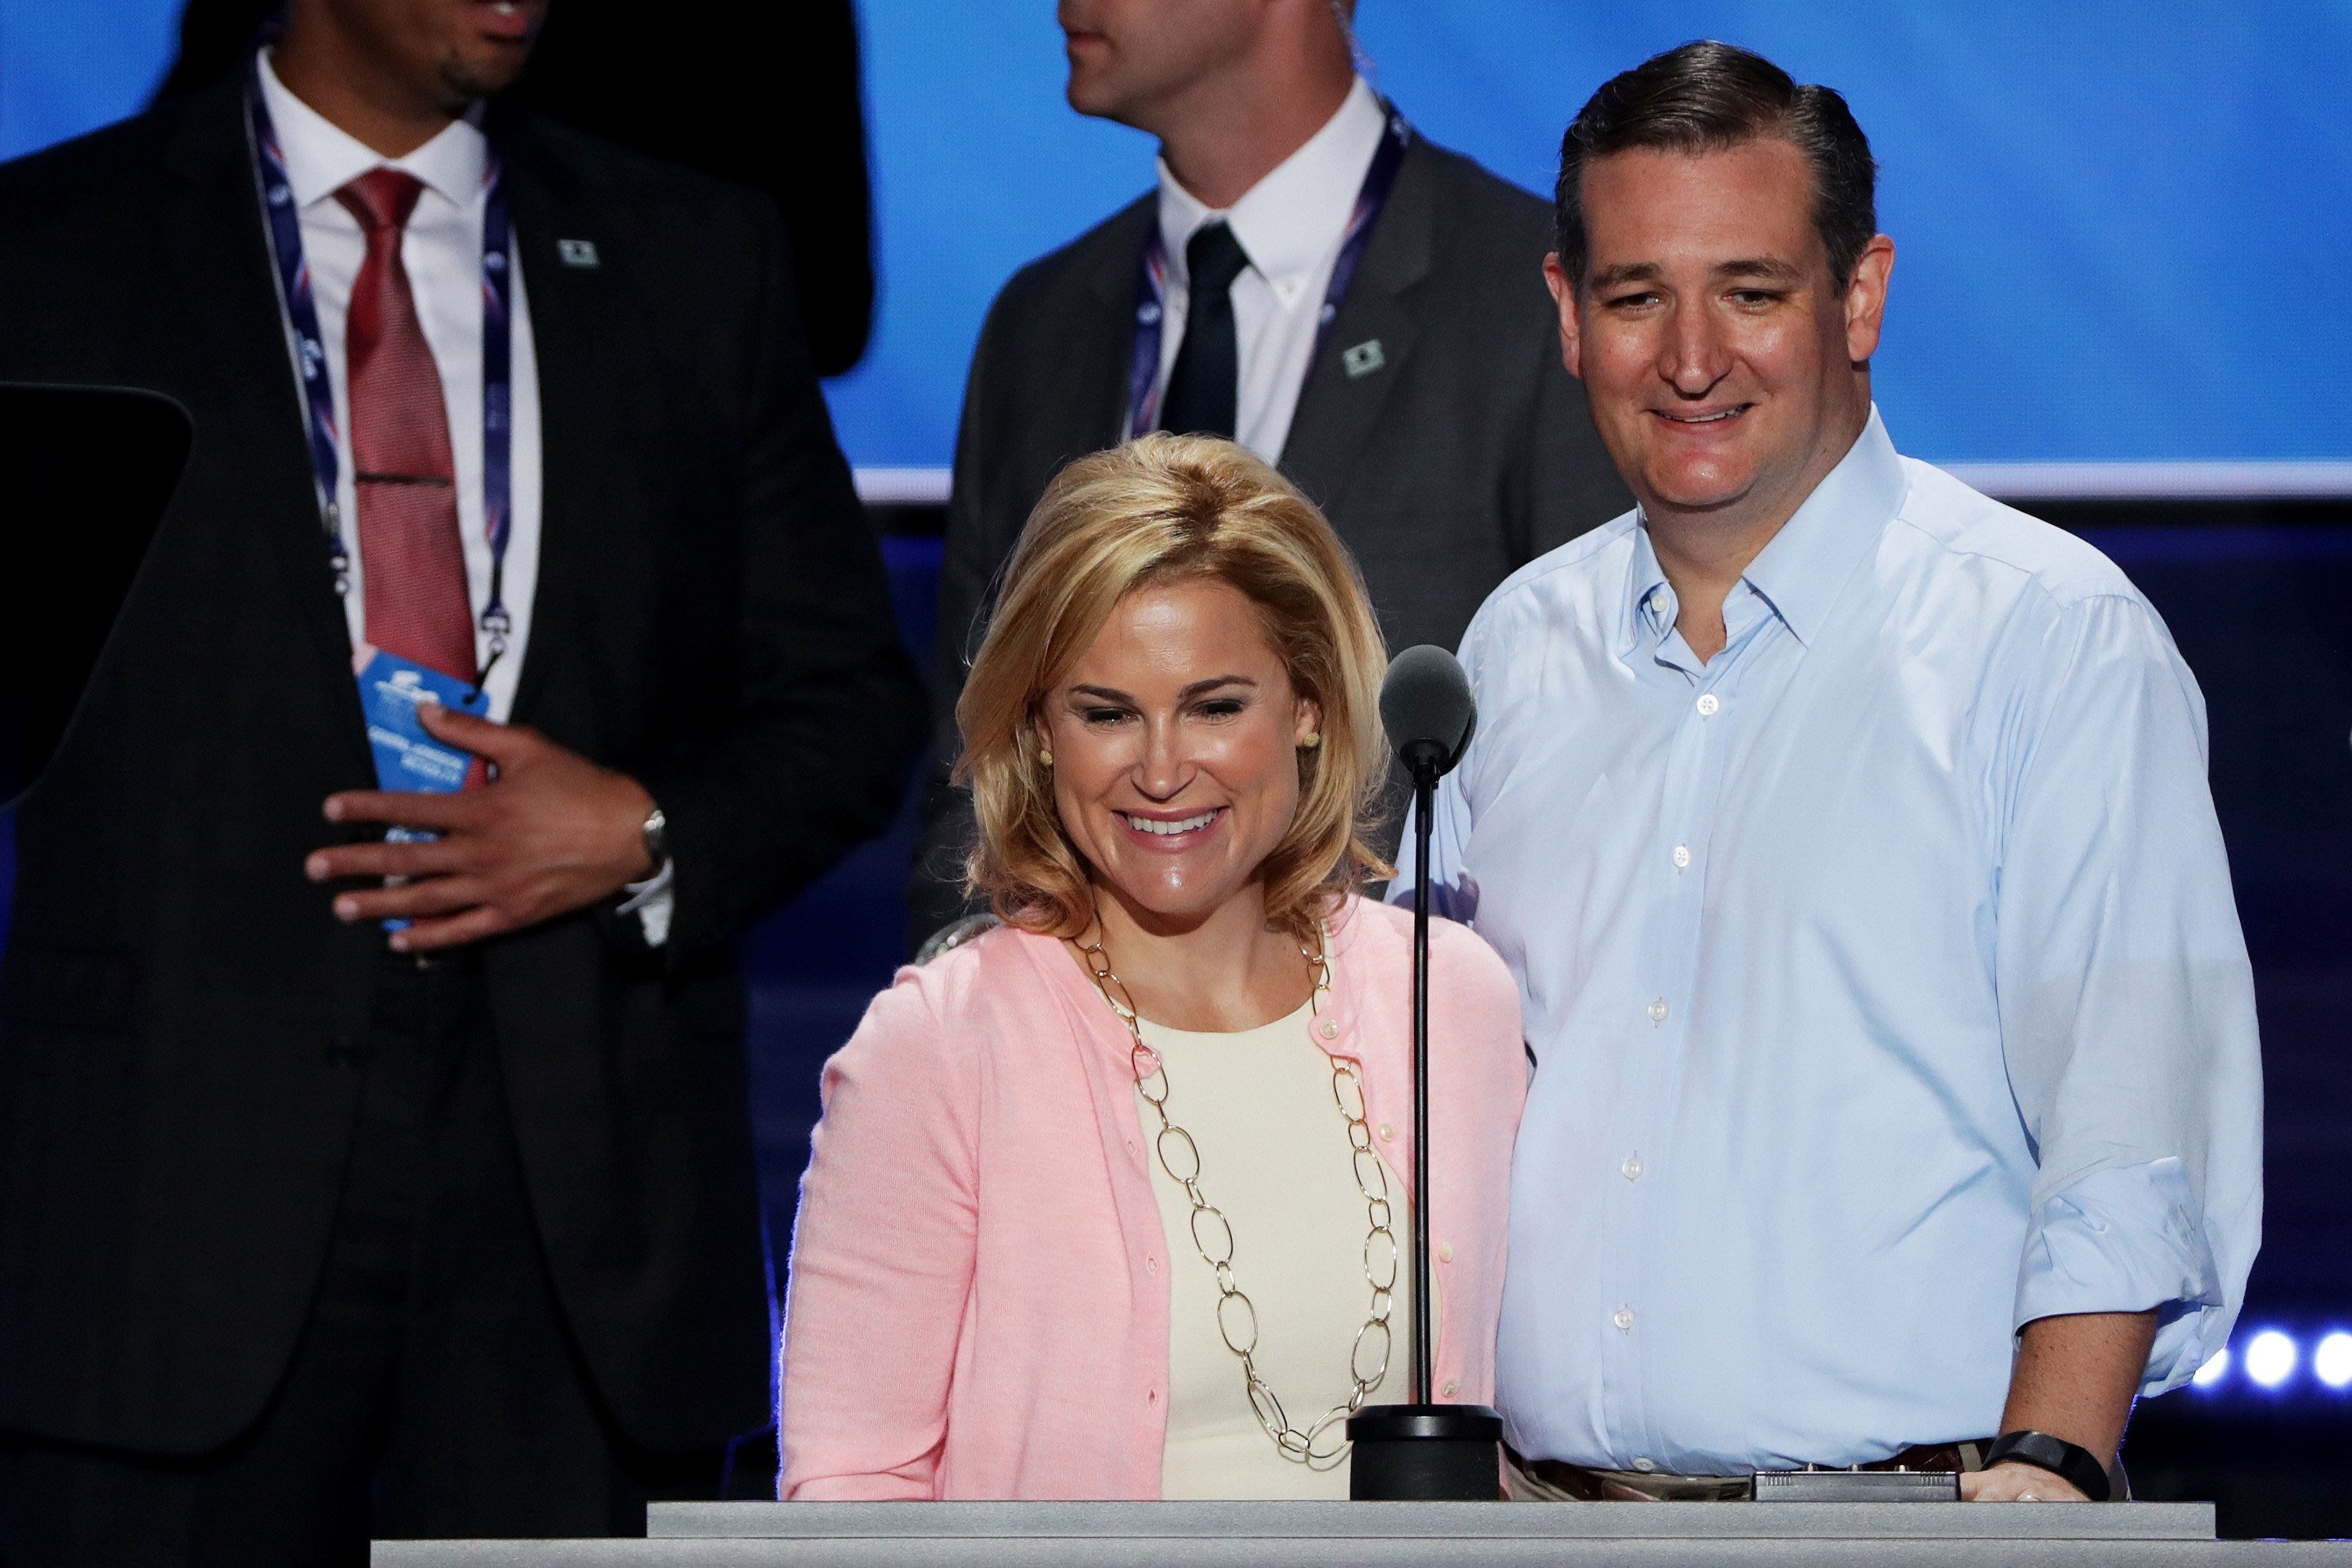 Heidi Cruz, pictured with Ted Cruz in 2016, tried to organize an extravagant trip with friends to Cancun, according to The Ne